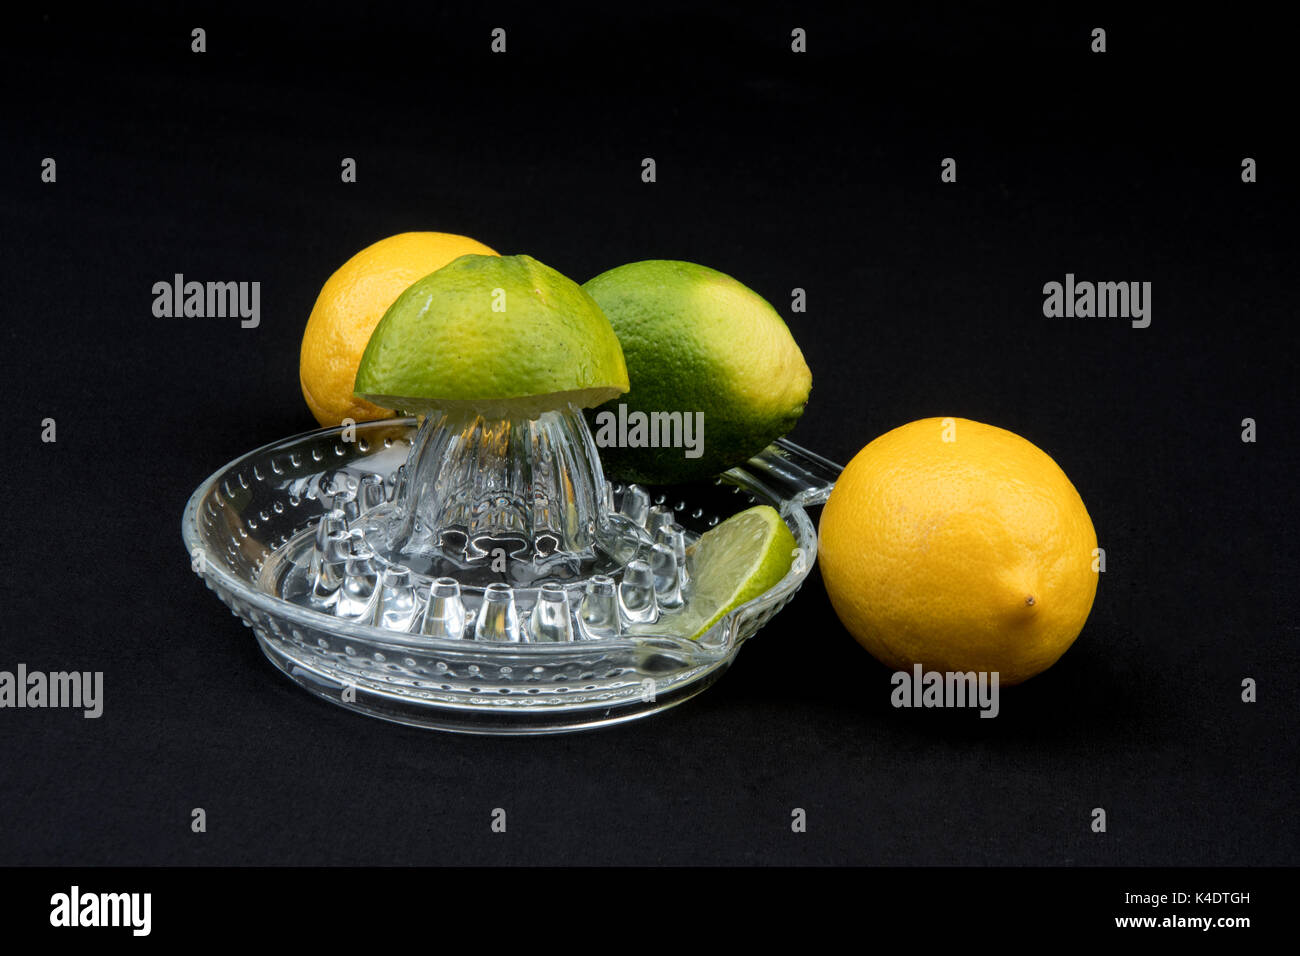 Juicer and citrus fruits. Stock Photo